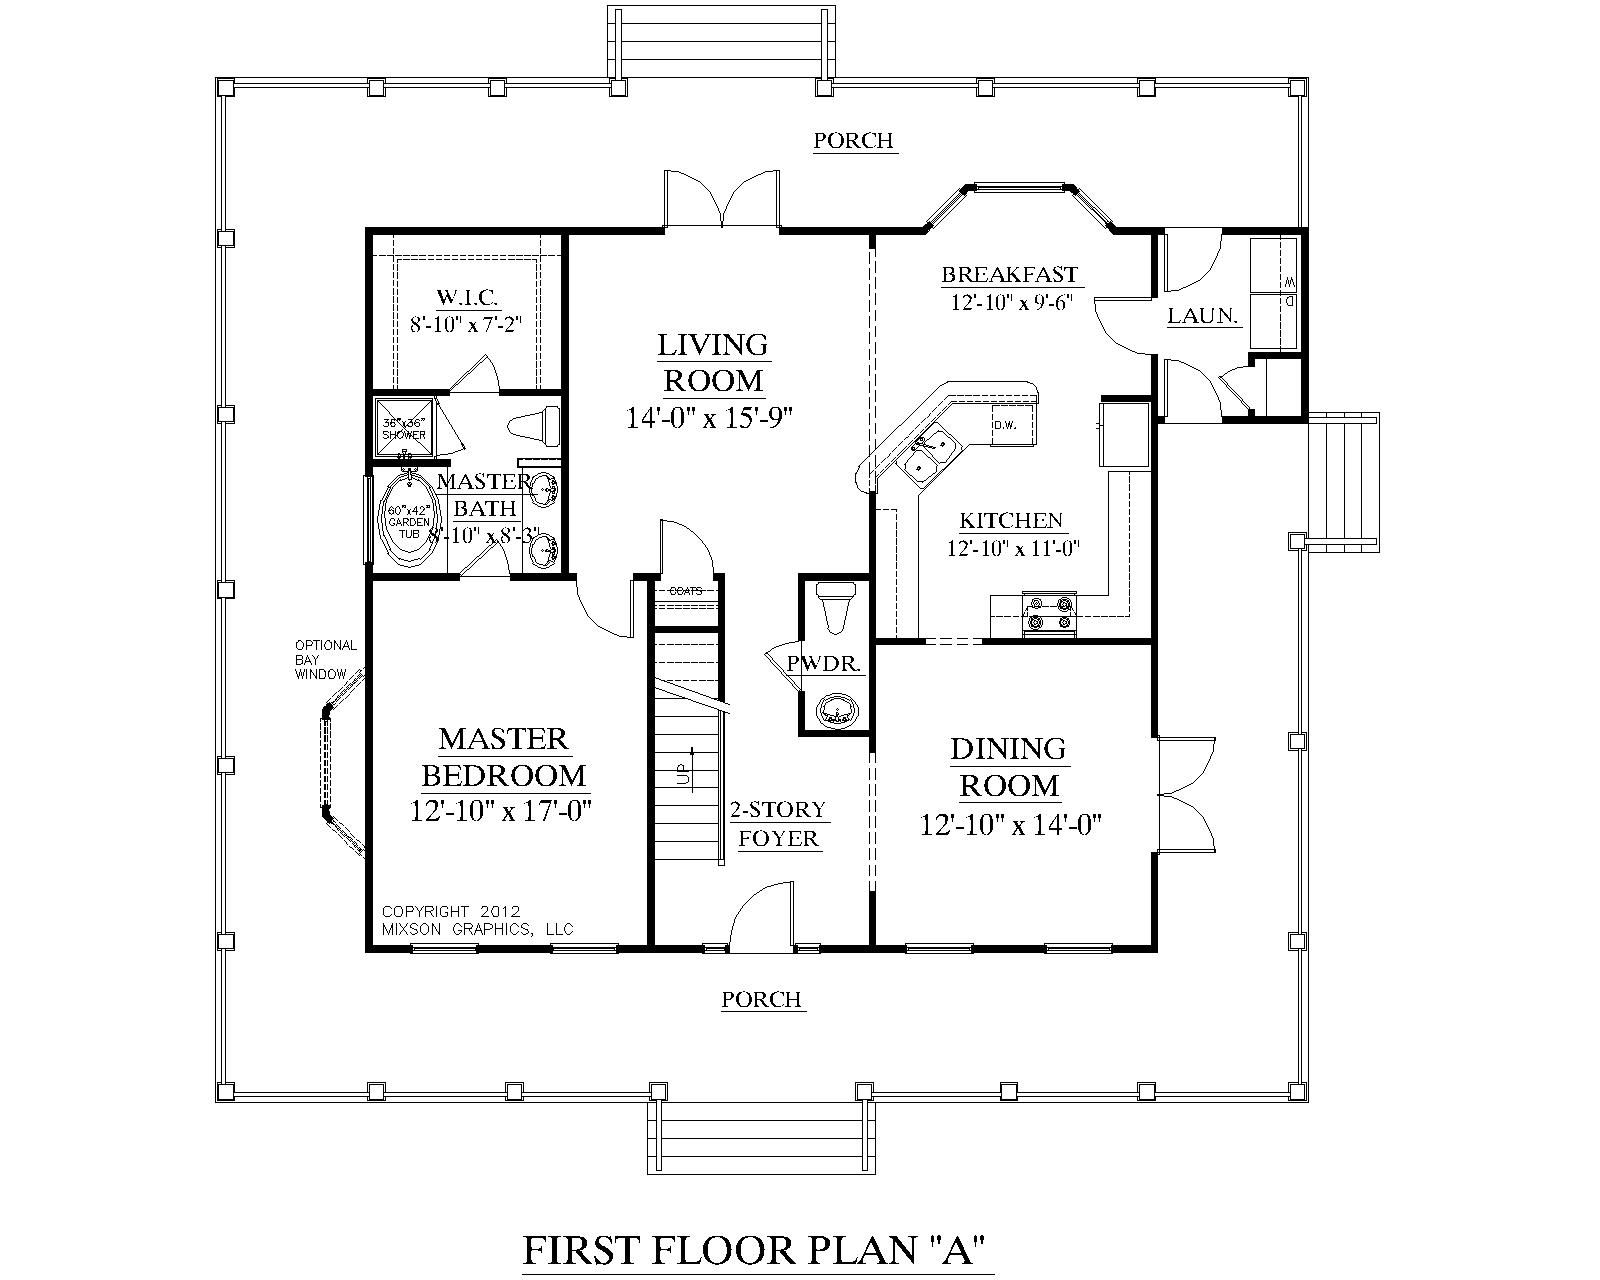 images about Possible House Plans on Pinterest   Modular       images about Possible House Plans on Pinterest   Modular Homes  House plans and Floor Plans